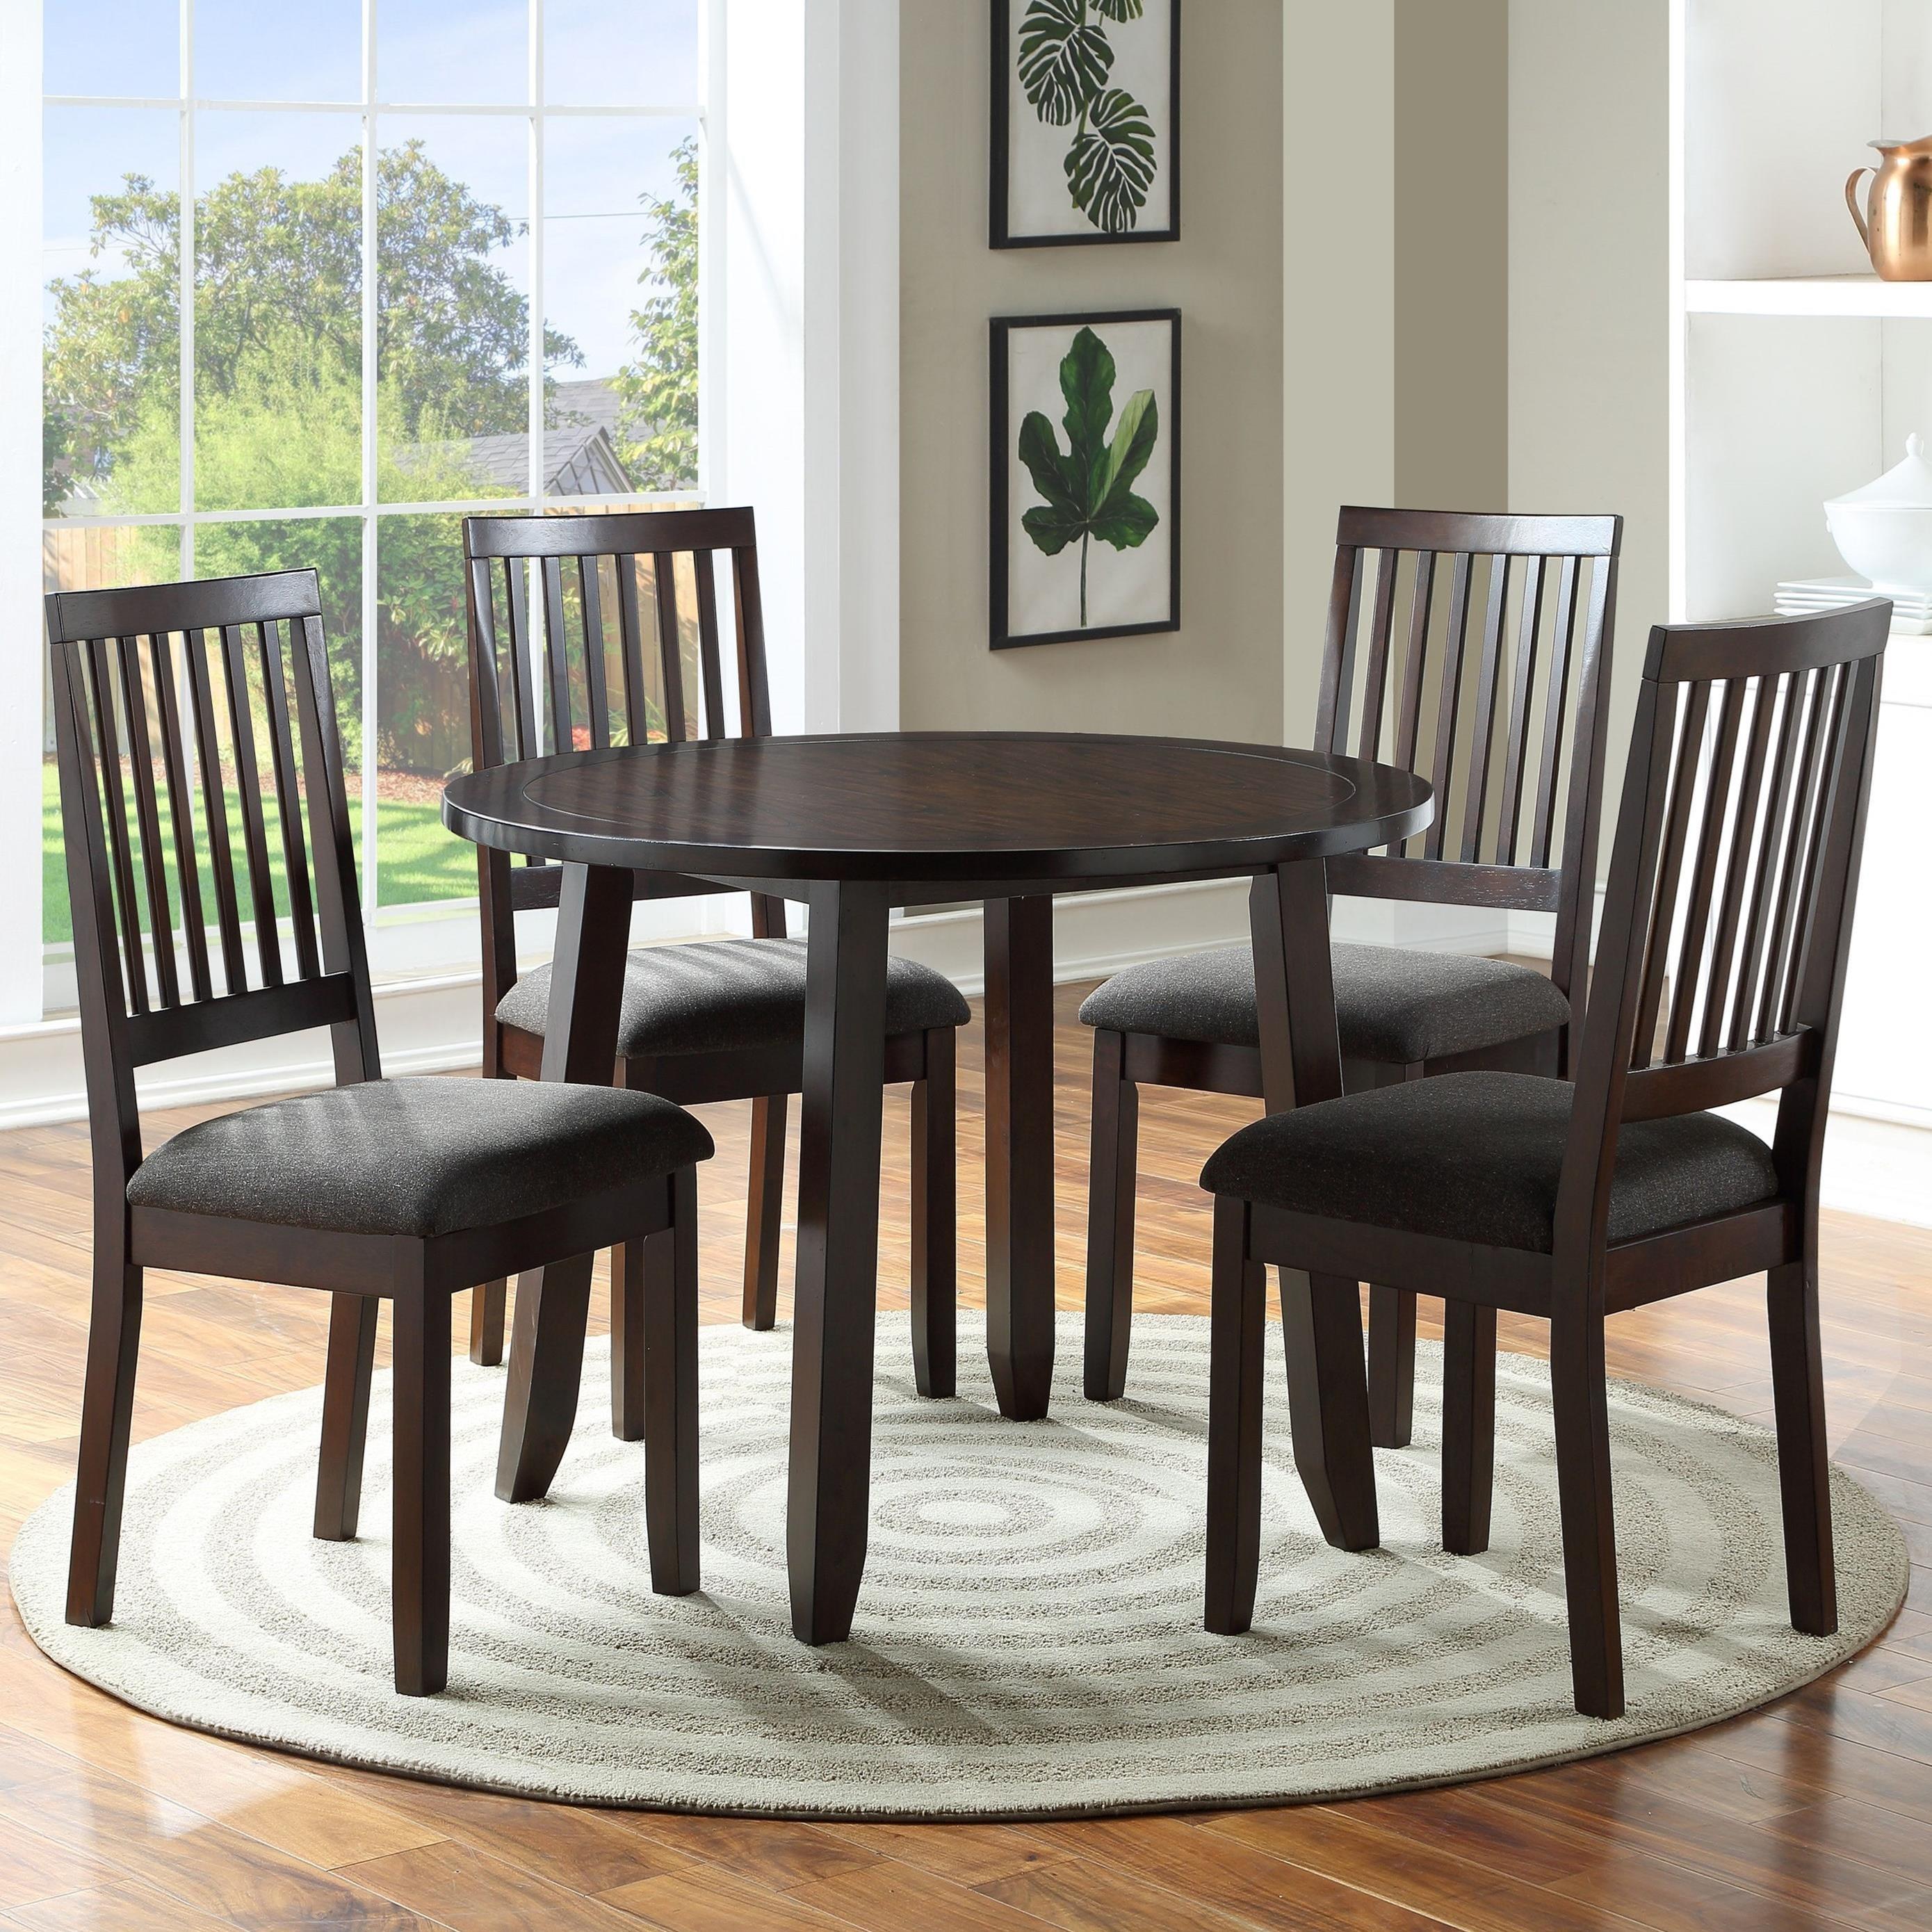 York Place York Place 5-Piece Dining Set by Steve Silver at Morris Home